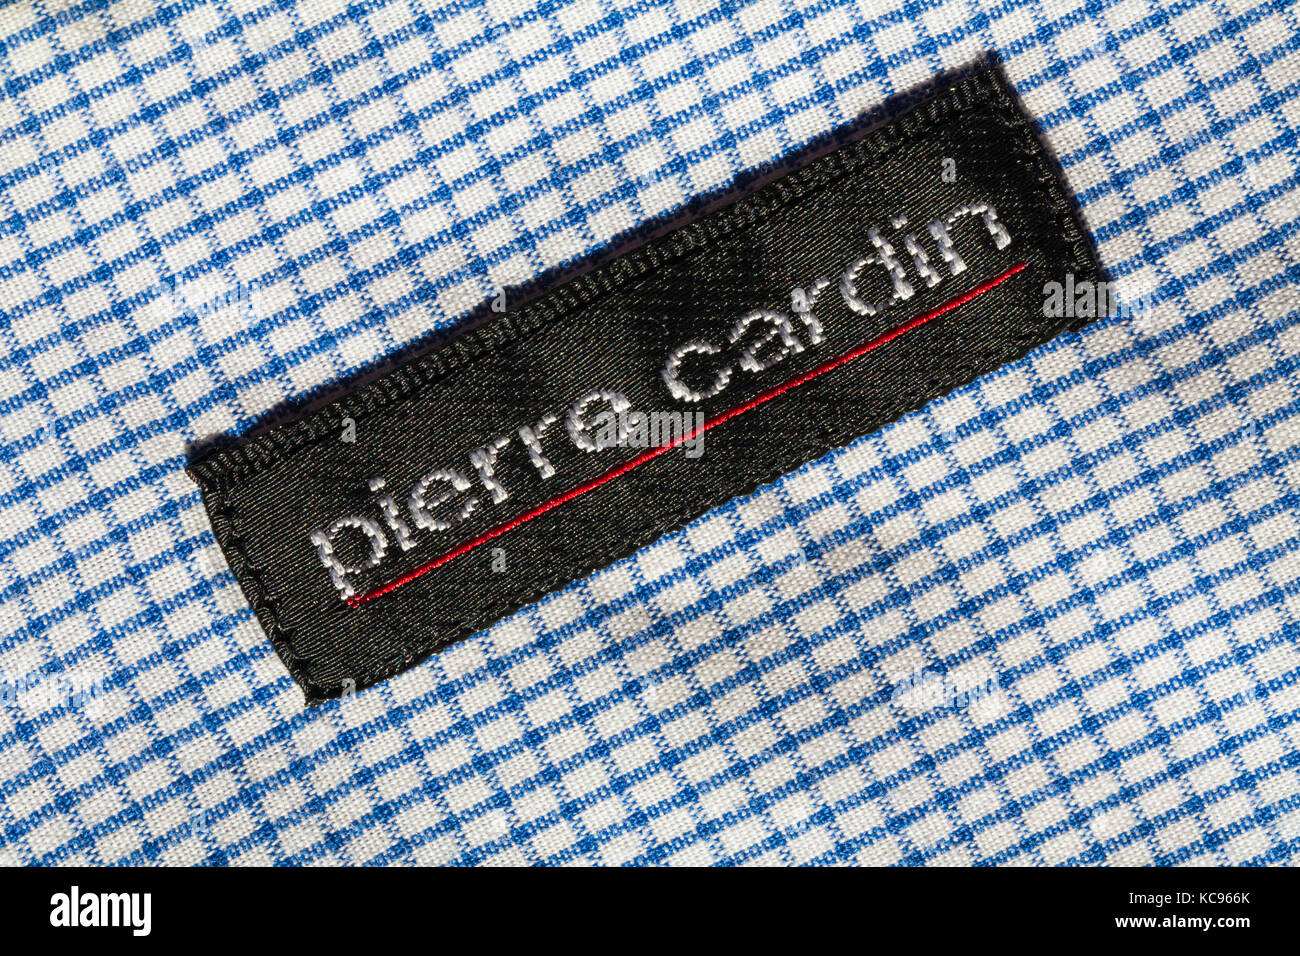 Pierre cardin stock photos pierre cardin stock images alamy pierre cardin label in mans blue and white checked shirt stock image biocorpaavc Choice Image